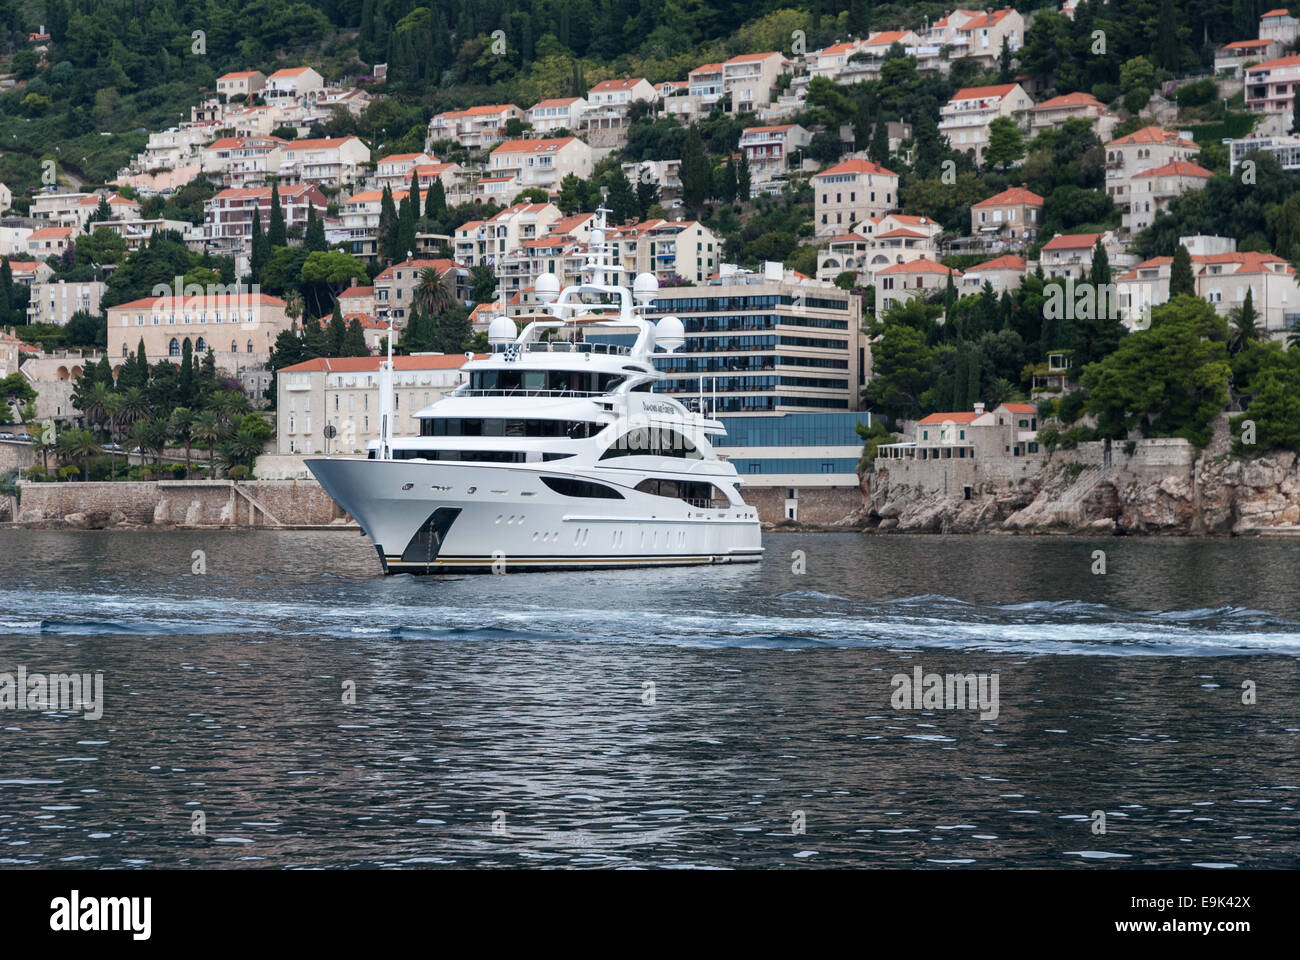 007 Yacht Stock Photos & 007 Yacht Stock Images - Alamy